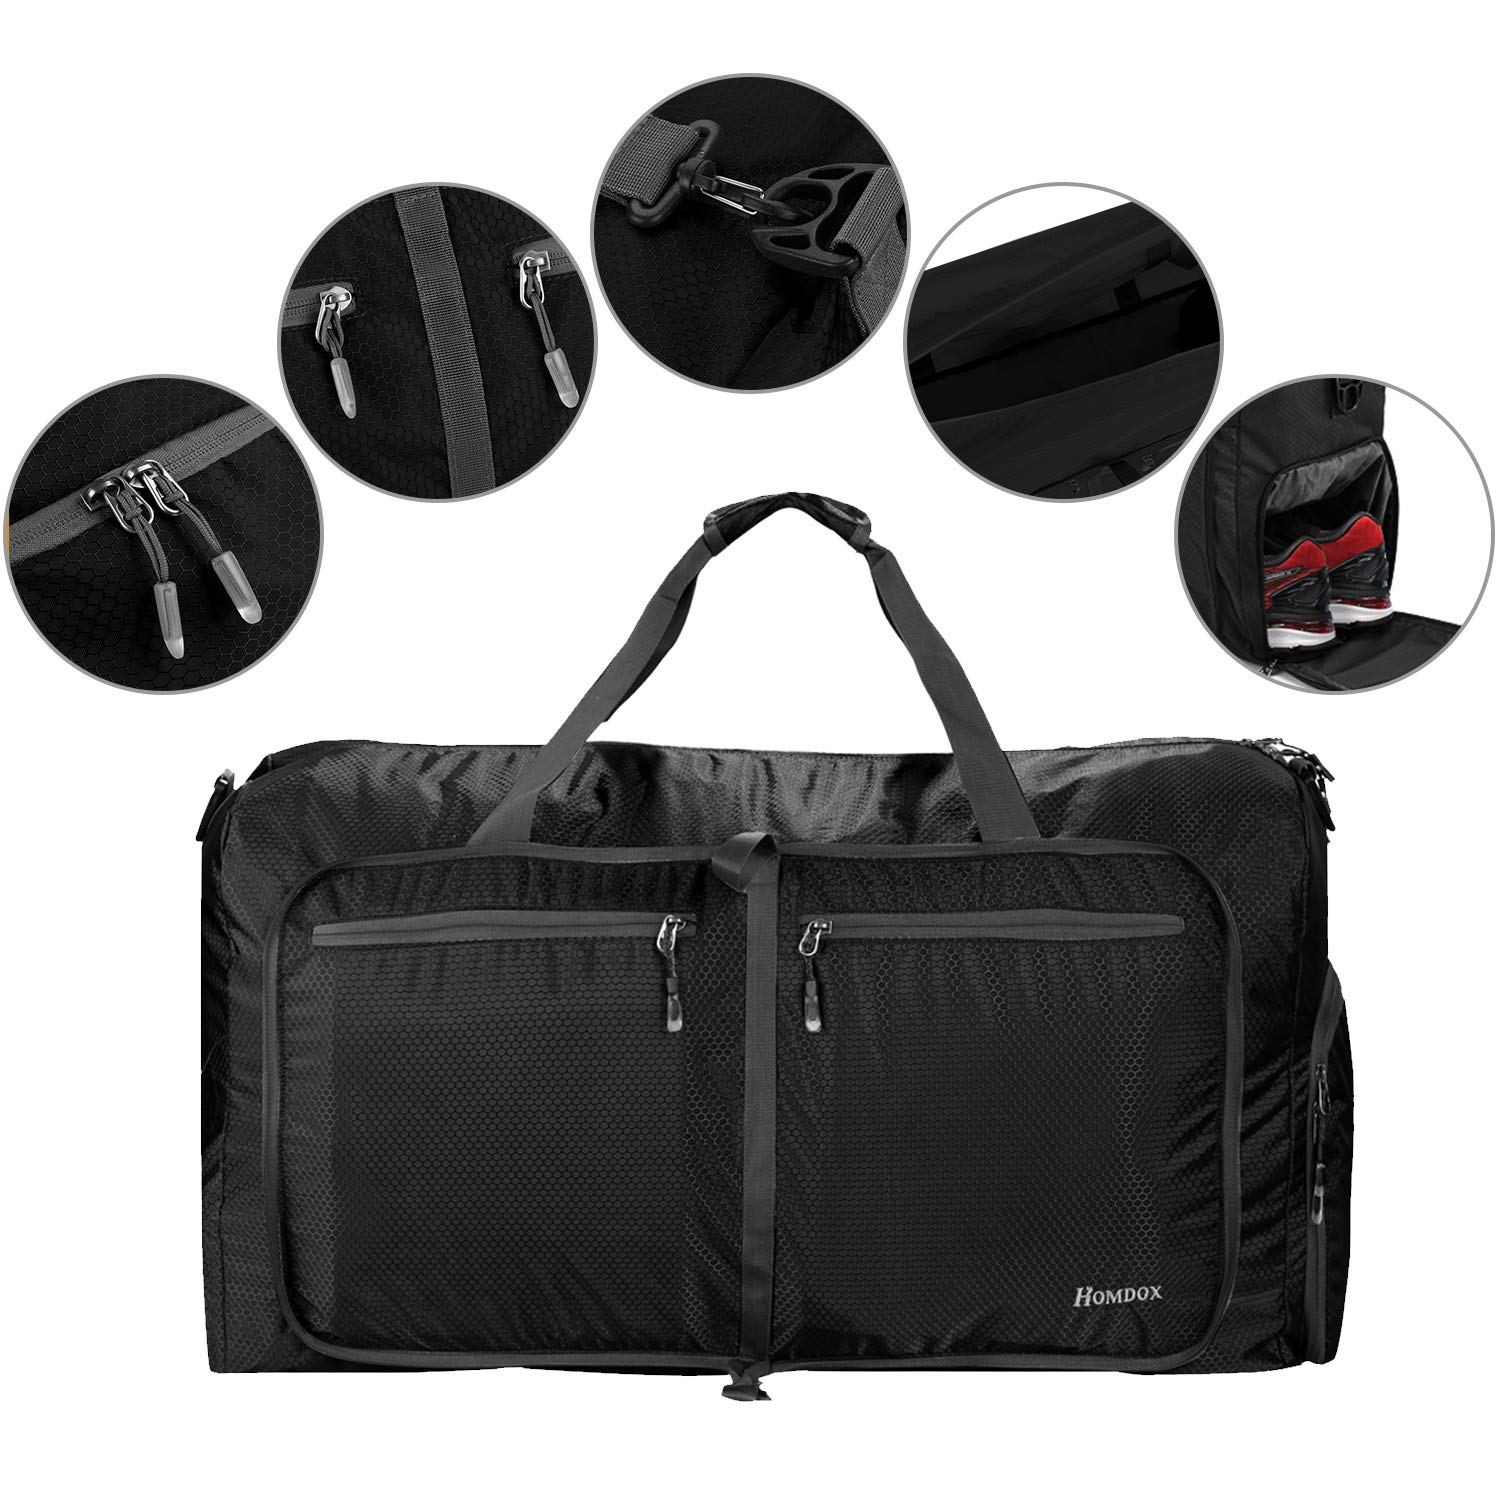 53d7a89c1fee Details about Homdox 80L Large Duffle Bag for Men Women,Waterproof, Black,  Size X-Large